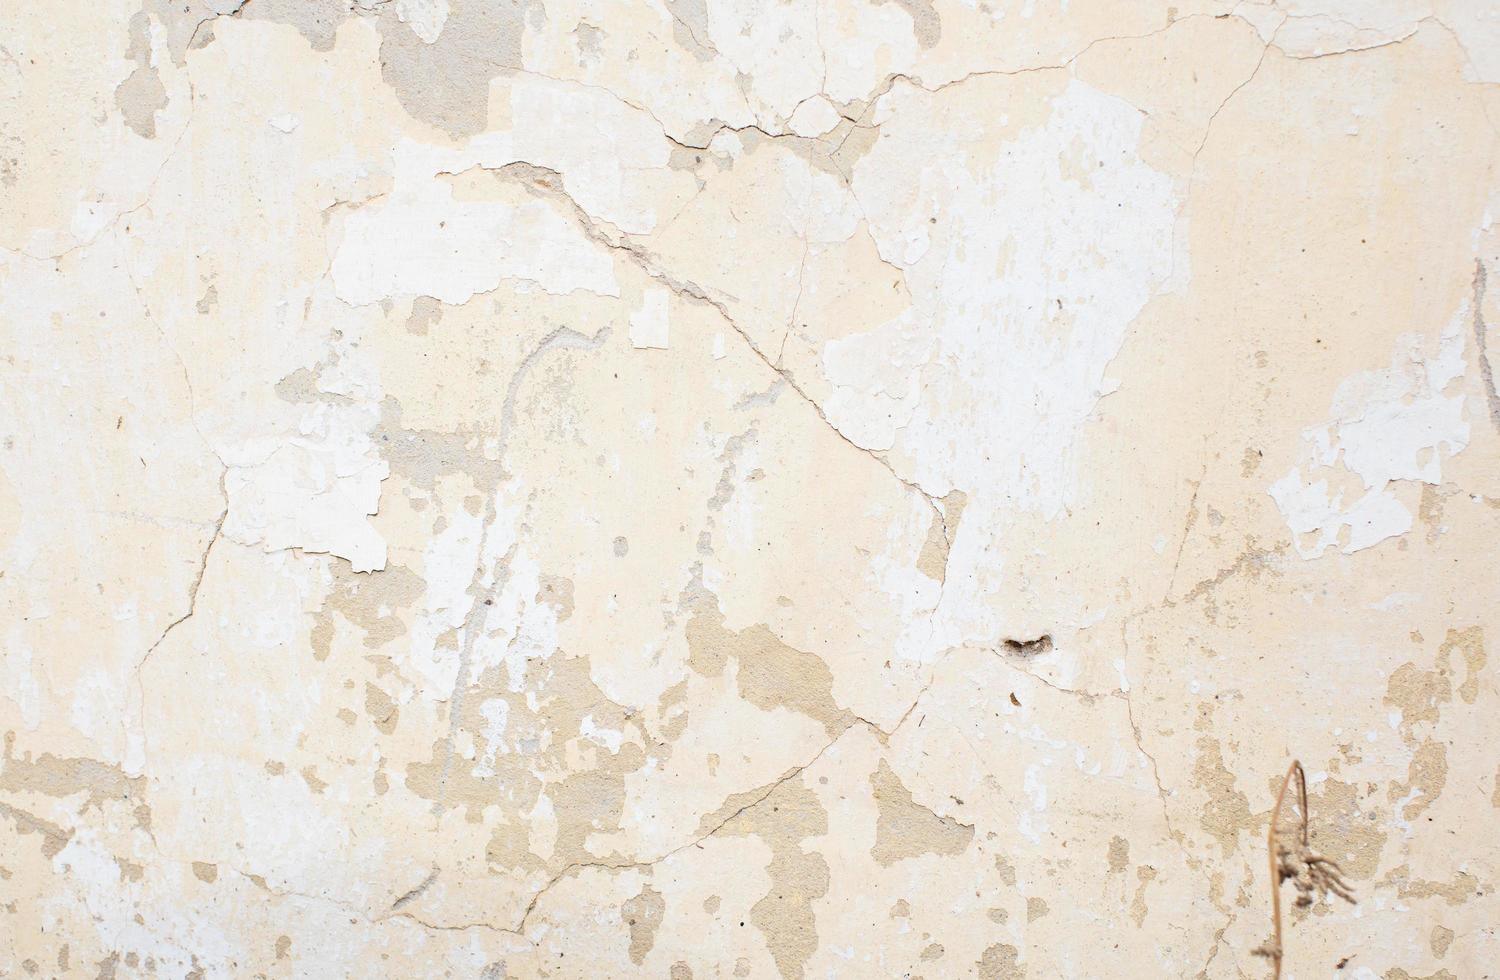 Chipped wall texture photo